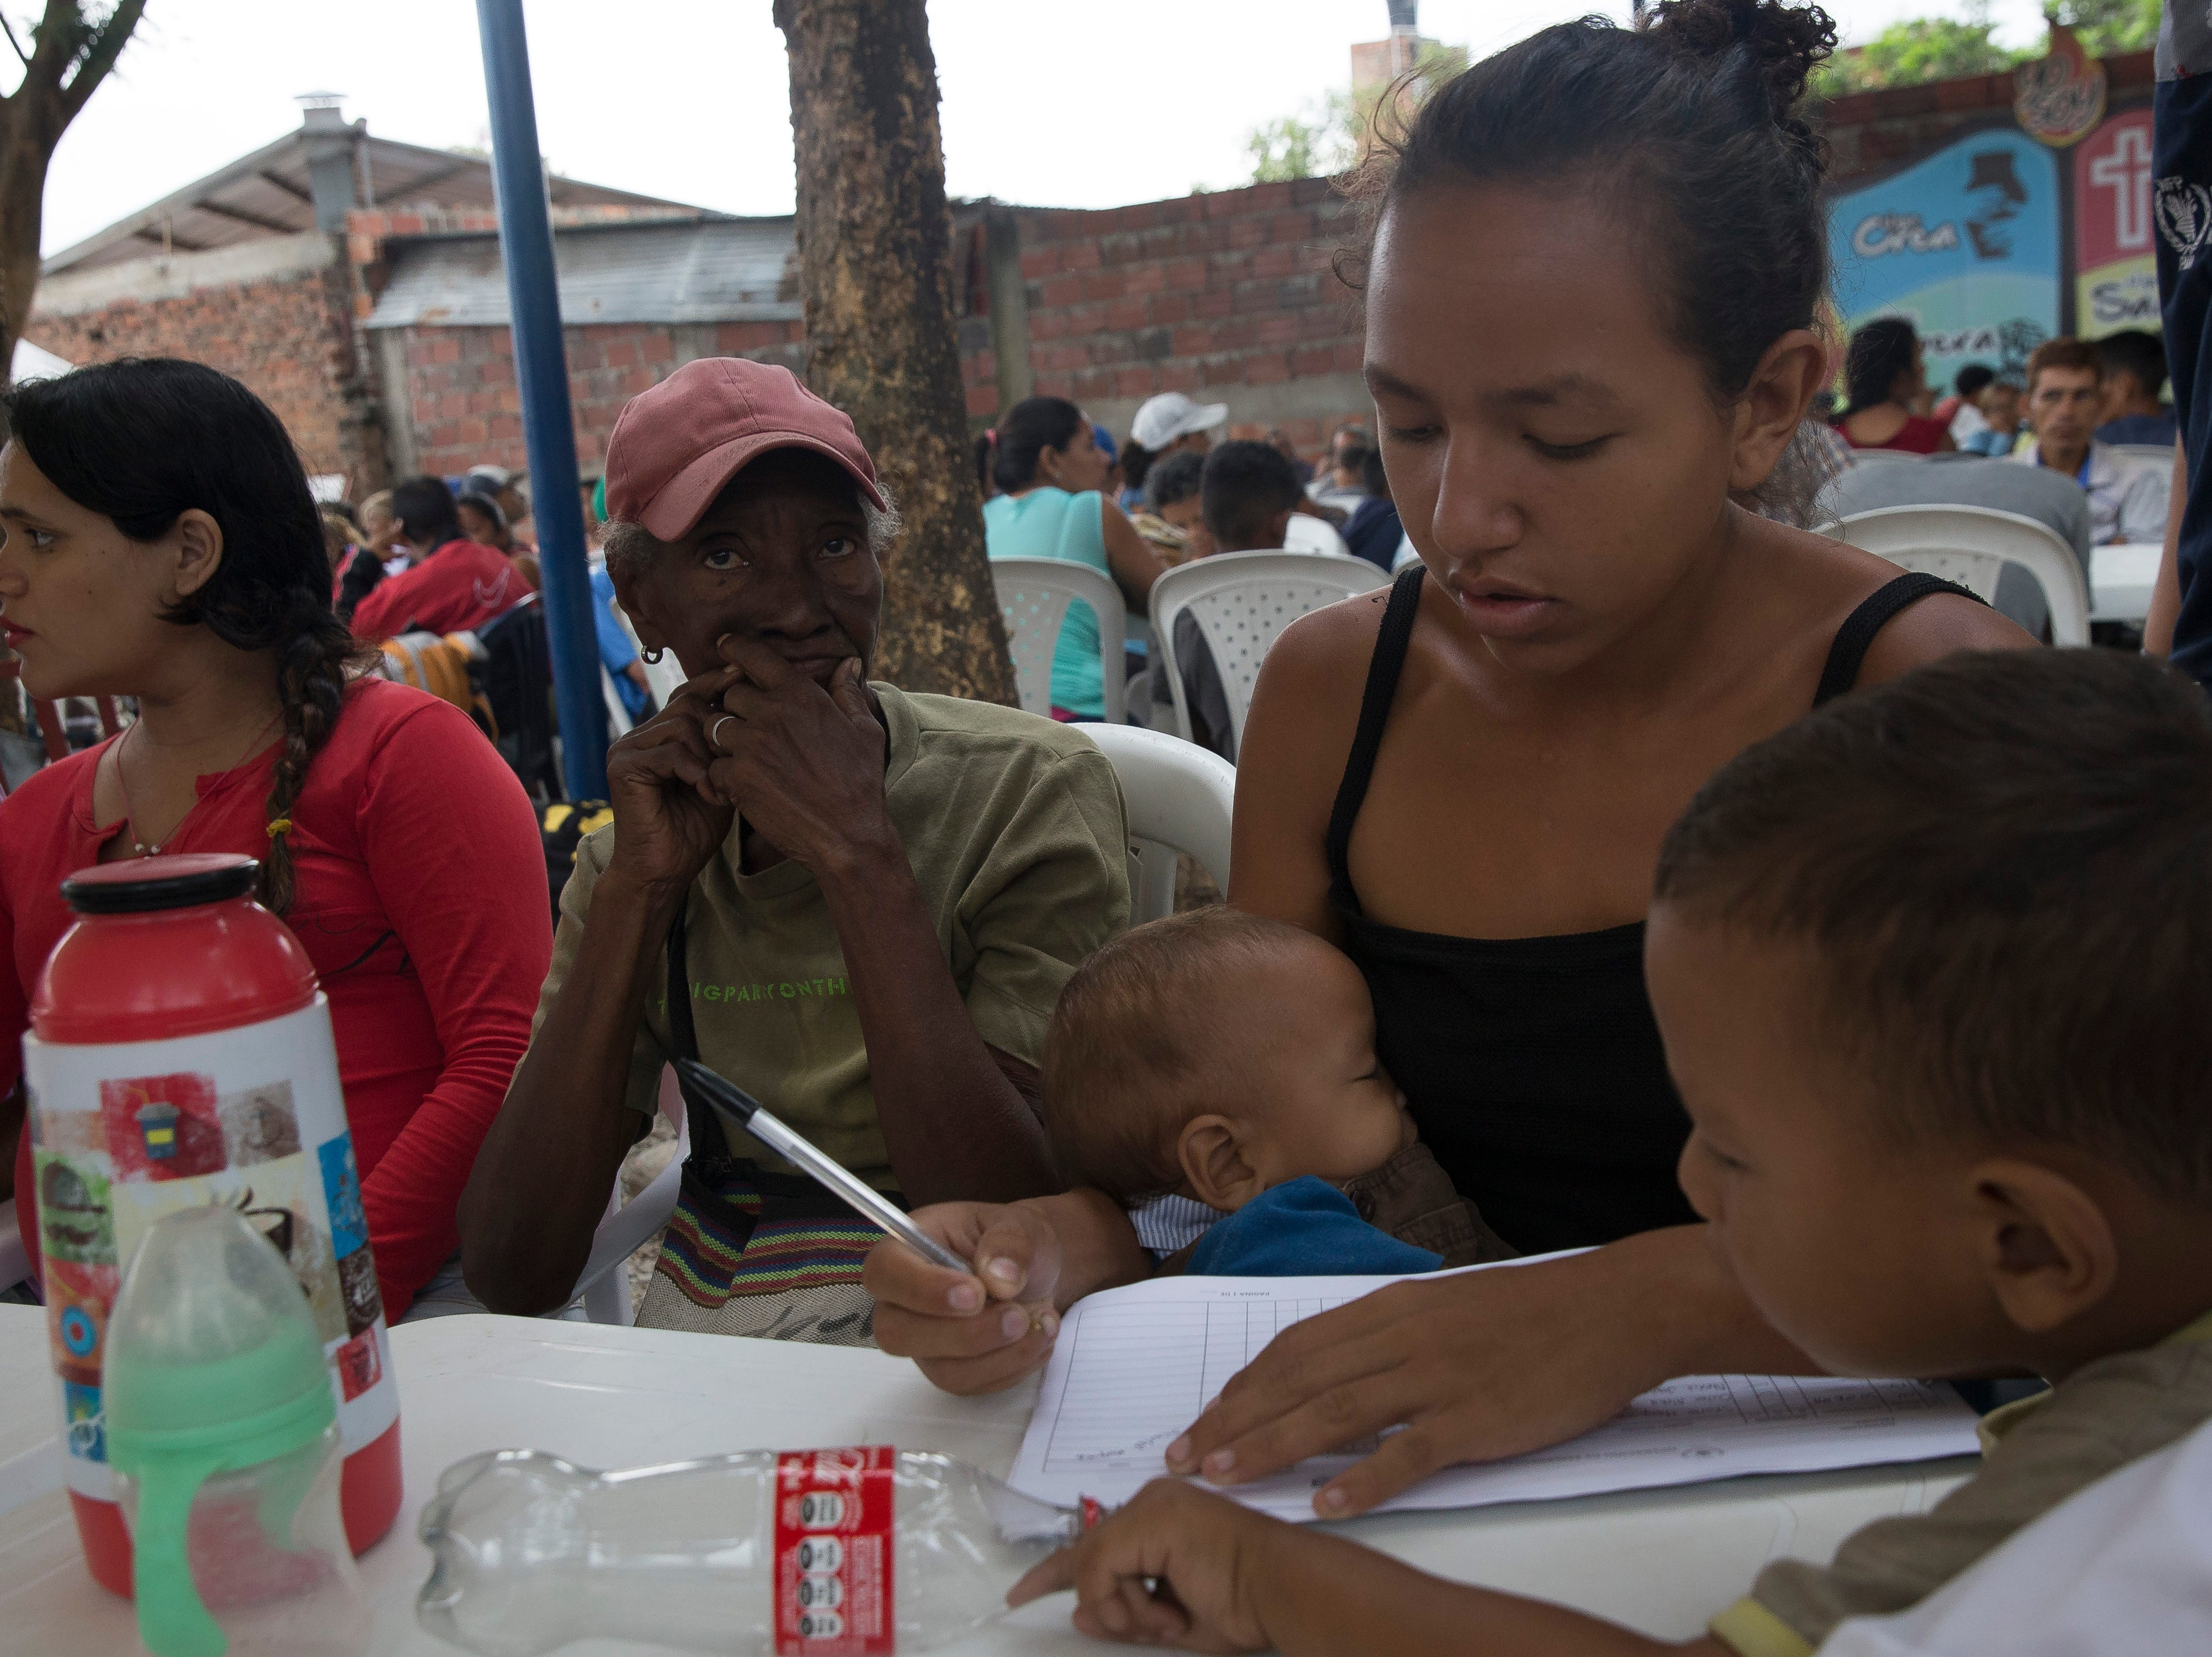 A Venezuelan family writes down their information to receive free breakfast along the Colombia-Venezuela border in Cœcuta, Colombia on Feb. 8, 2019.